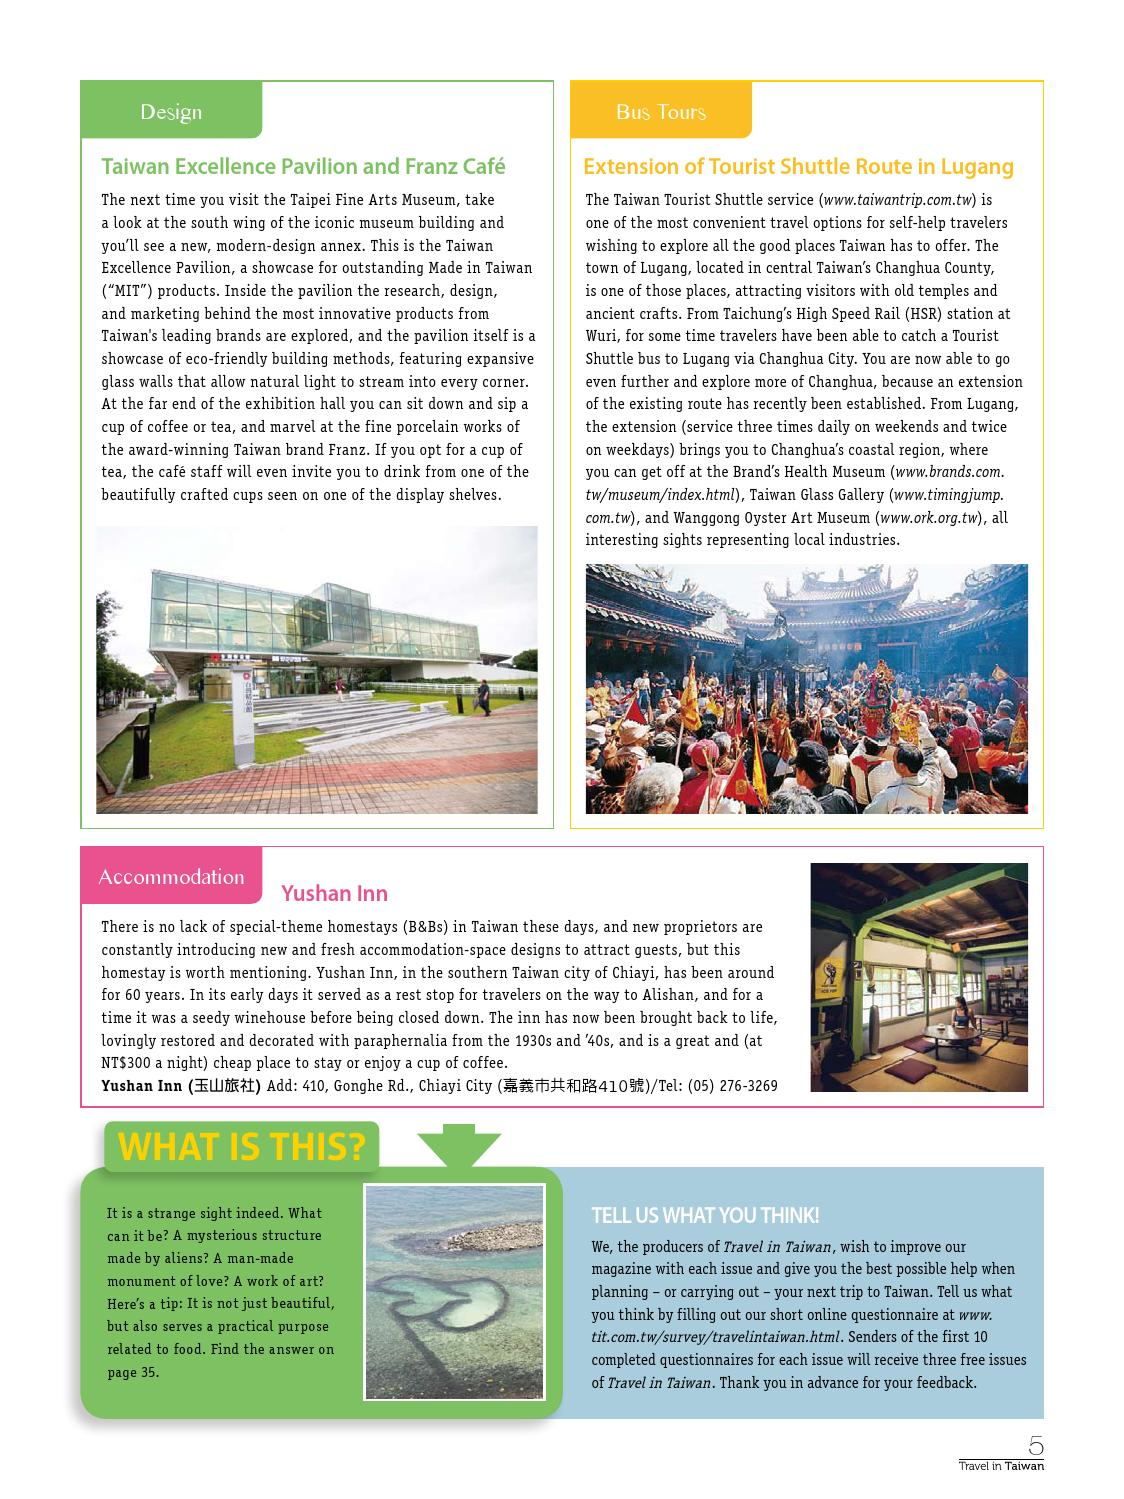 Travel In Taiwan No 53 2012 9 10 By Travel In Taiwan Issuu